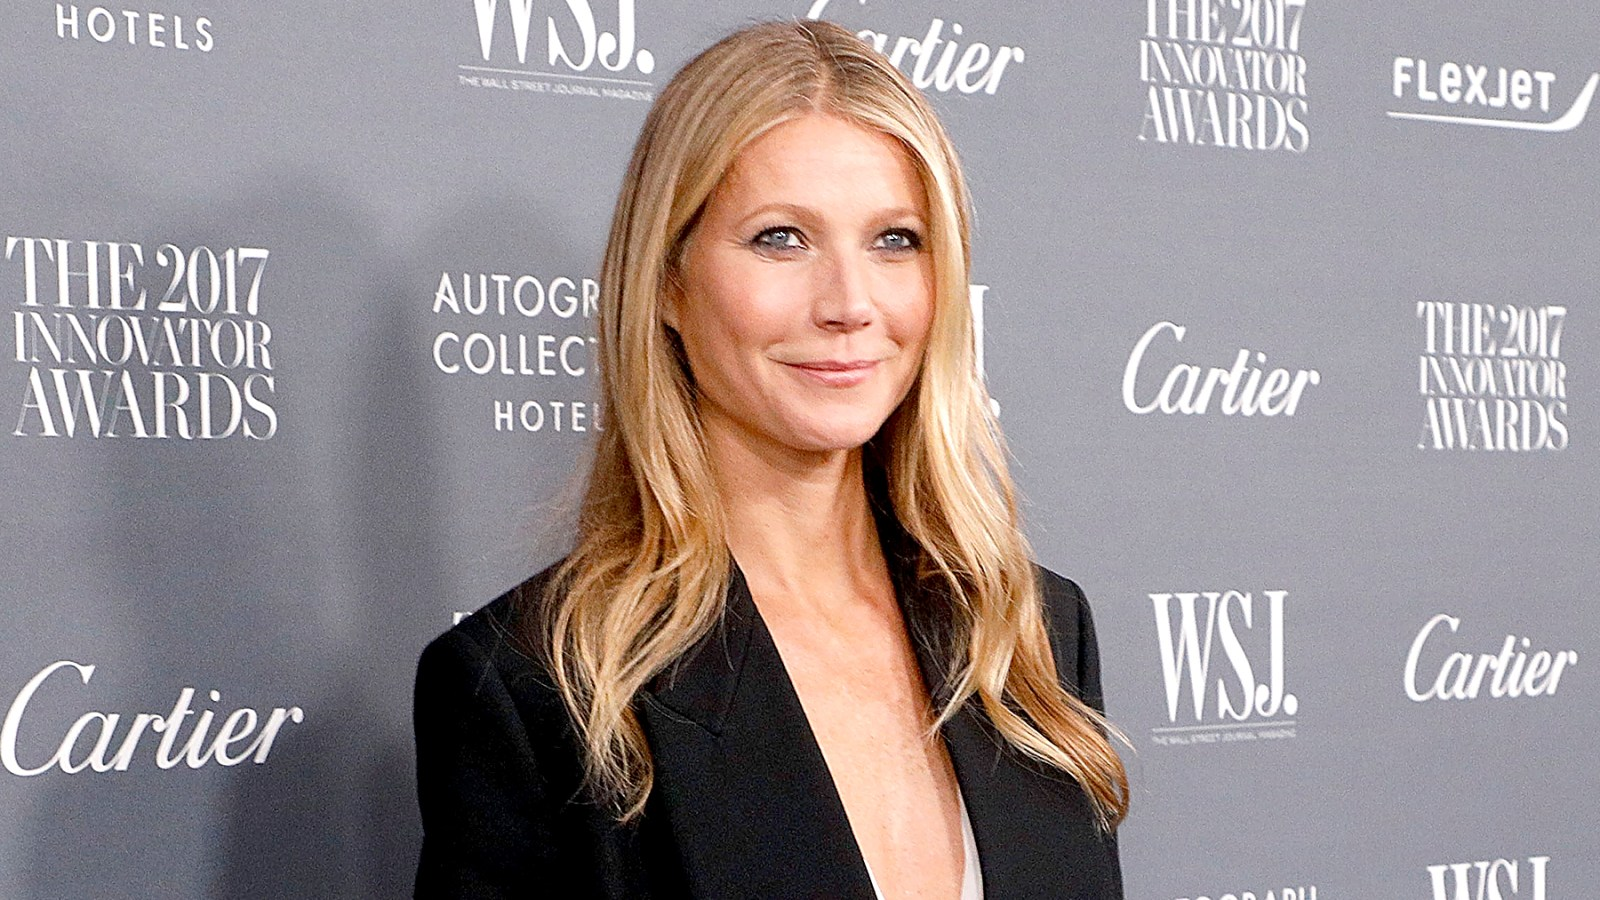 Celeb Hairstylist Justine Marjans Tips For Hair Extensions